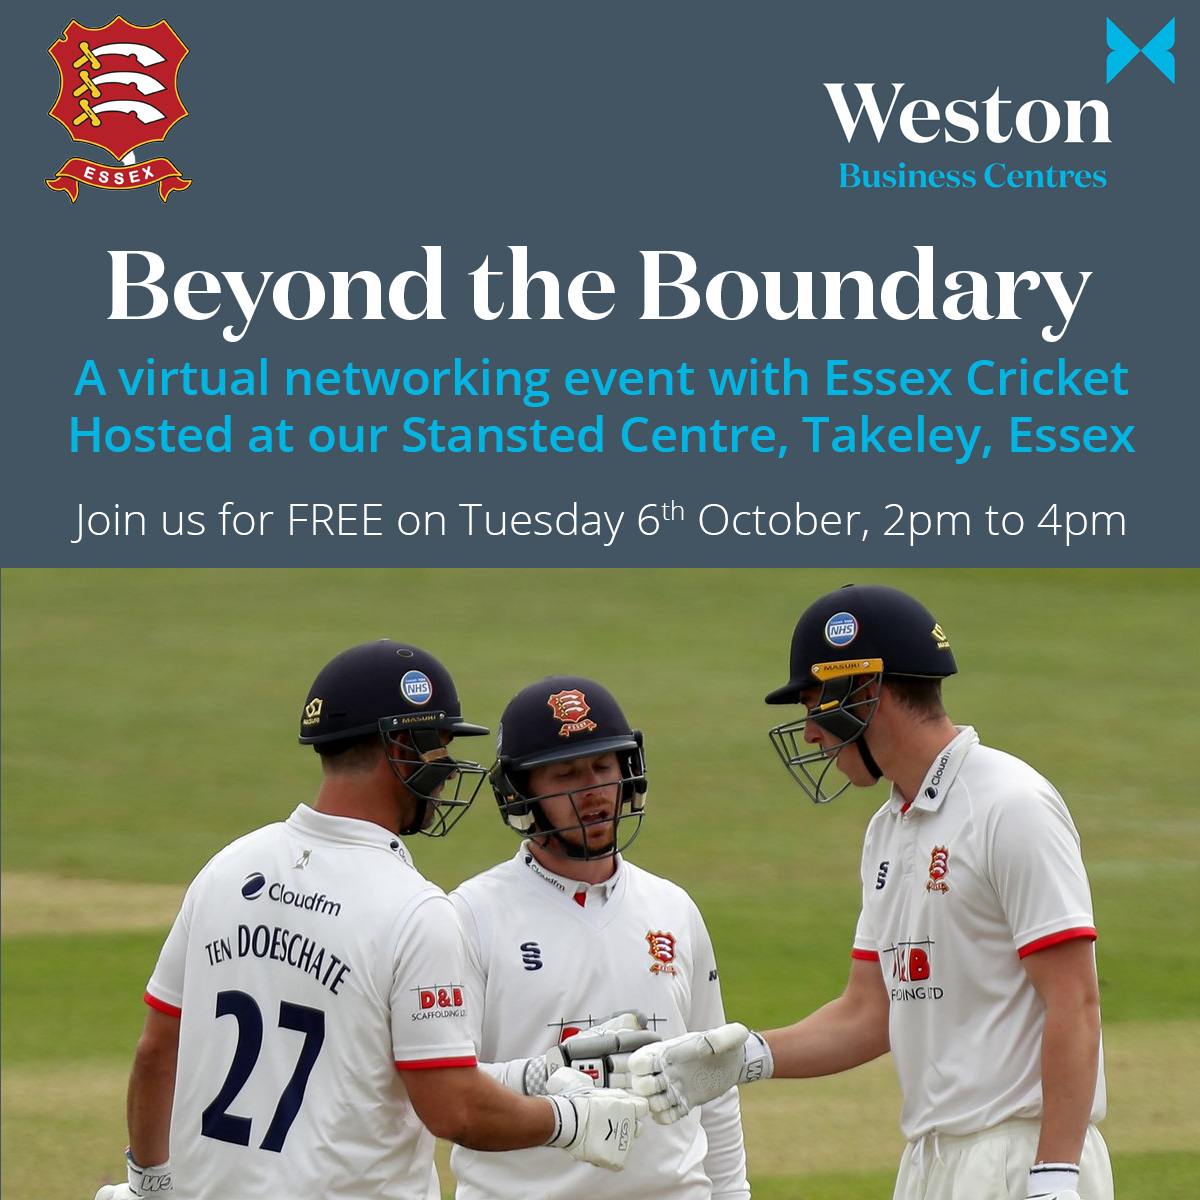 Before the weekend arrives, dont forget to register for this FREE virtual networking event, held by @EssexCricket, sponsored by @Tees_Law and hosted by us! Dont miss out: essexcricket.org.uk/virtual-beyond…